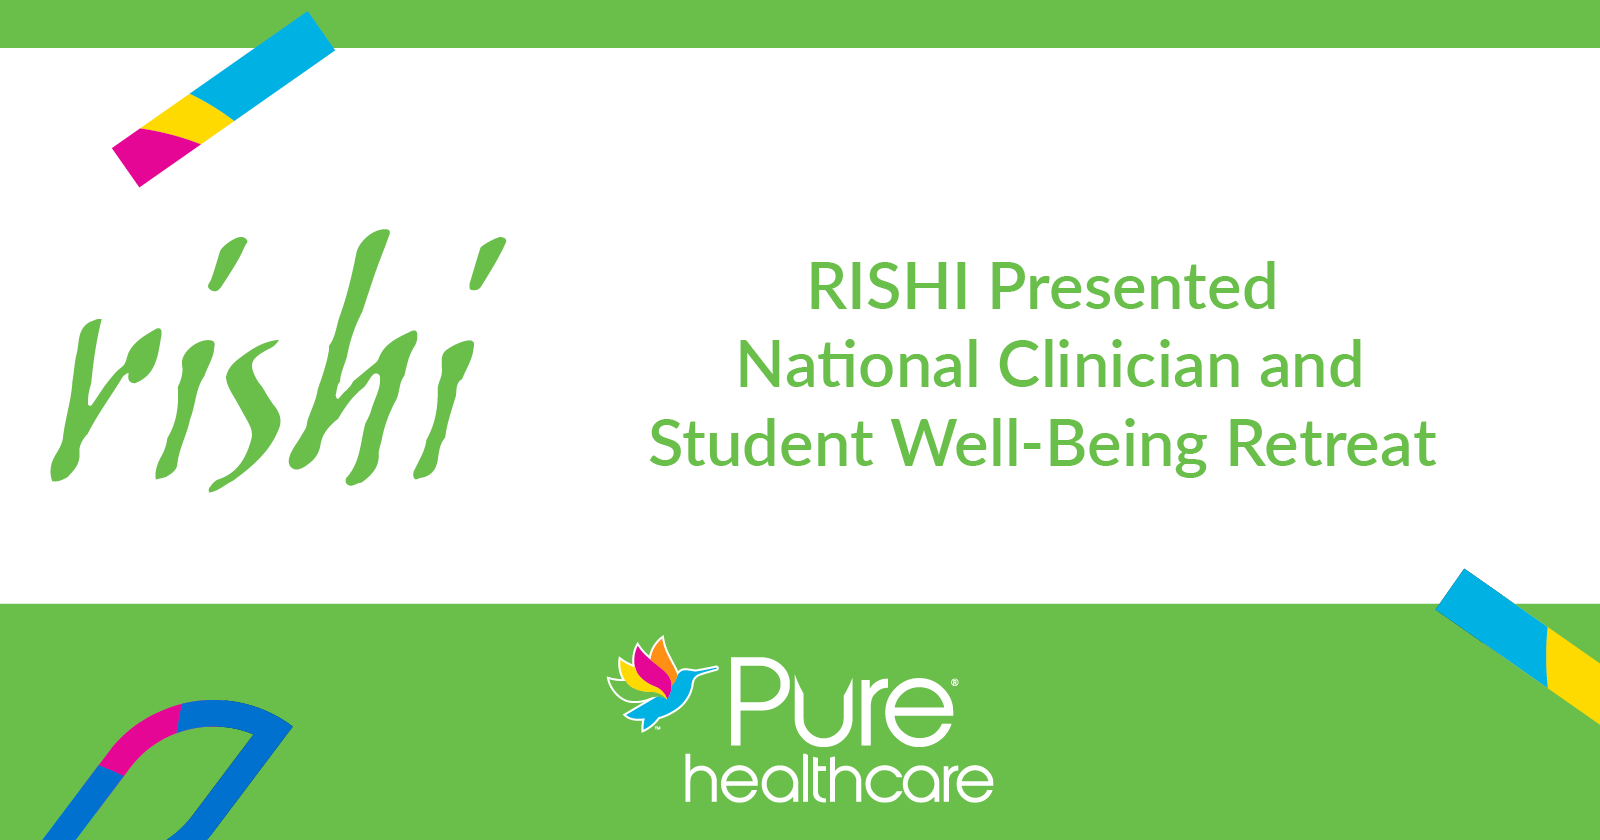 RISHI Presented National Clinician And Student Well-Being Retreat